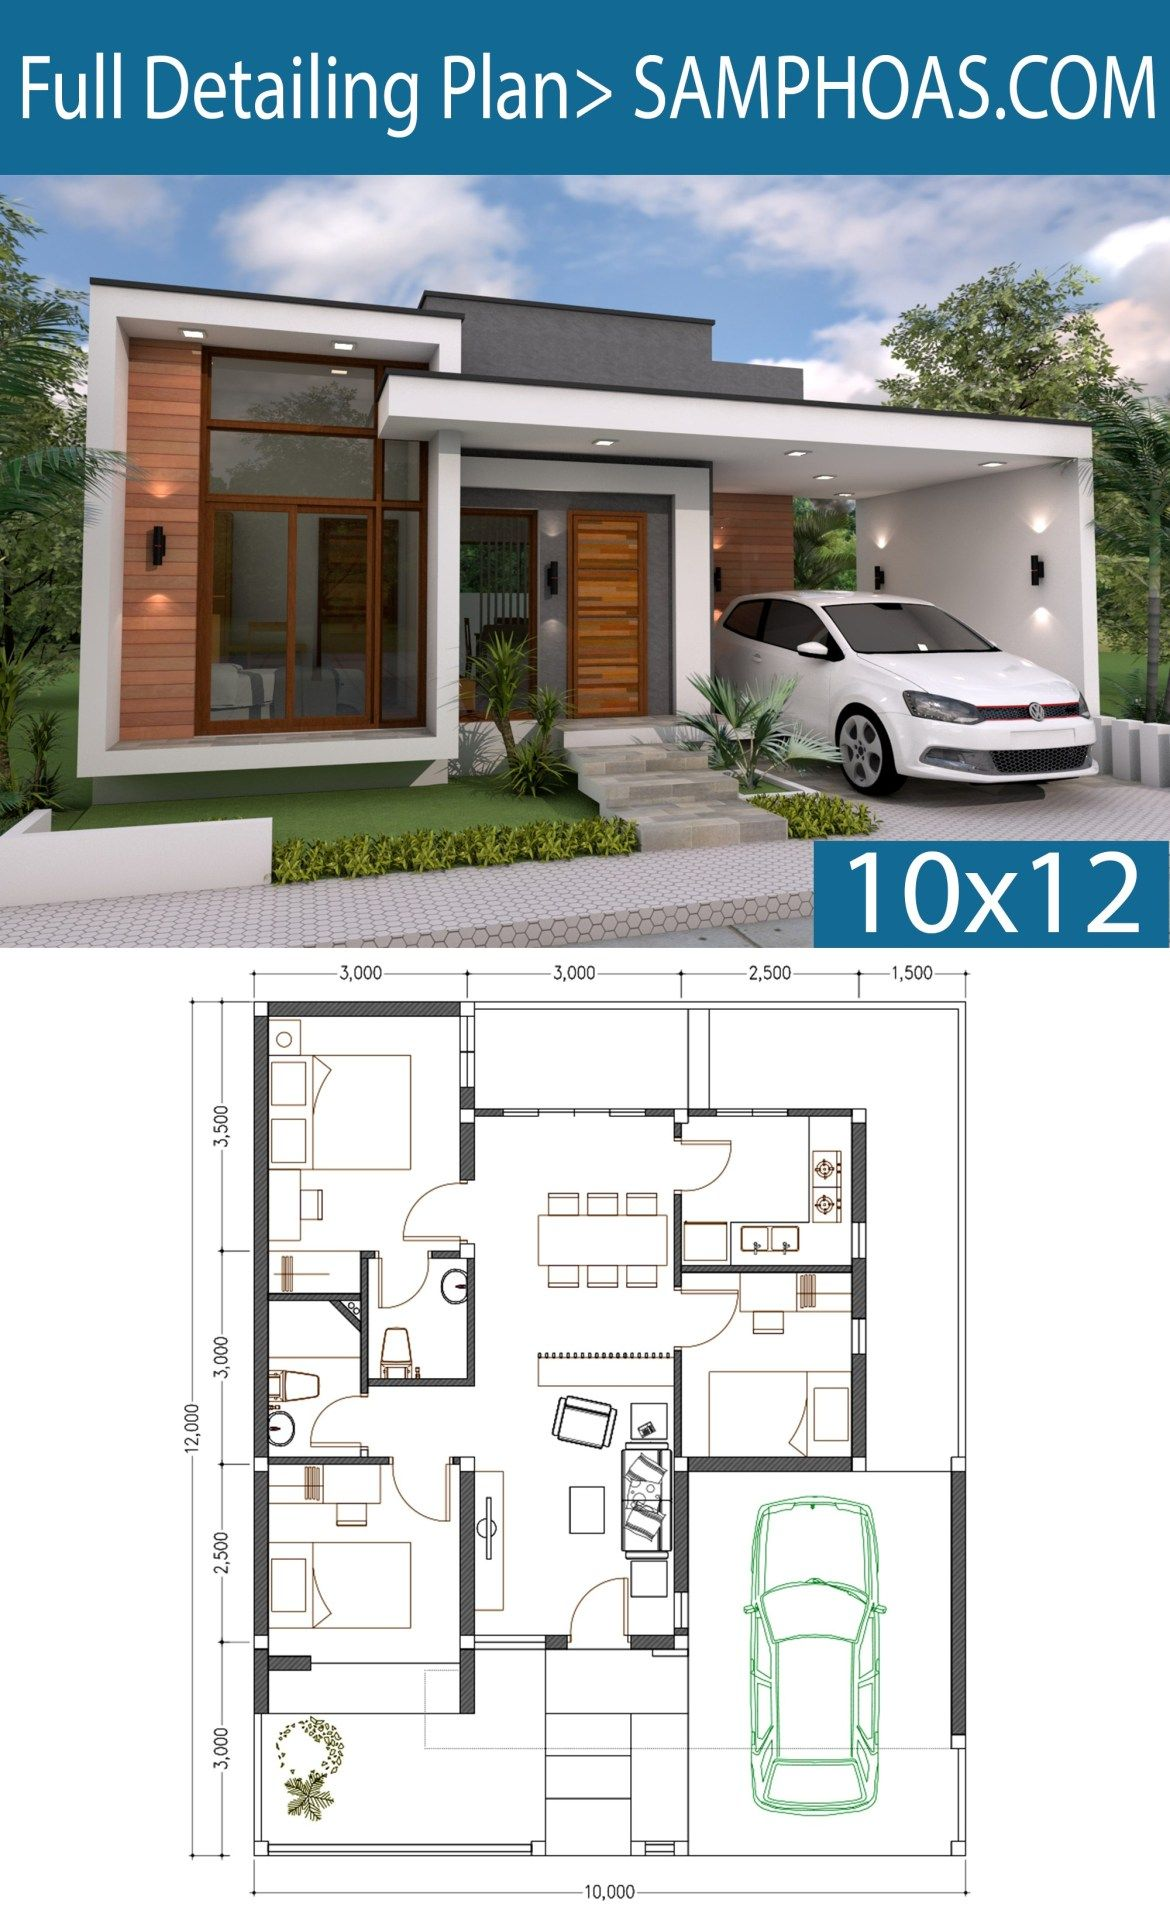 eccc94ac0ba015907bdb68d9c3c09623 - Get Modern 3 Bedroom House Floor Plans  Gif